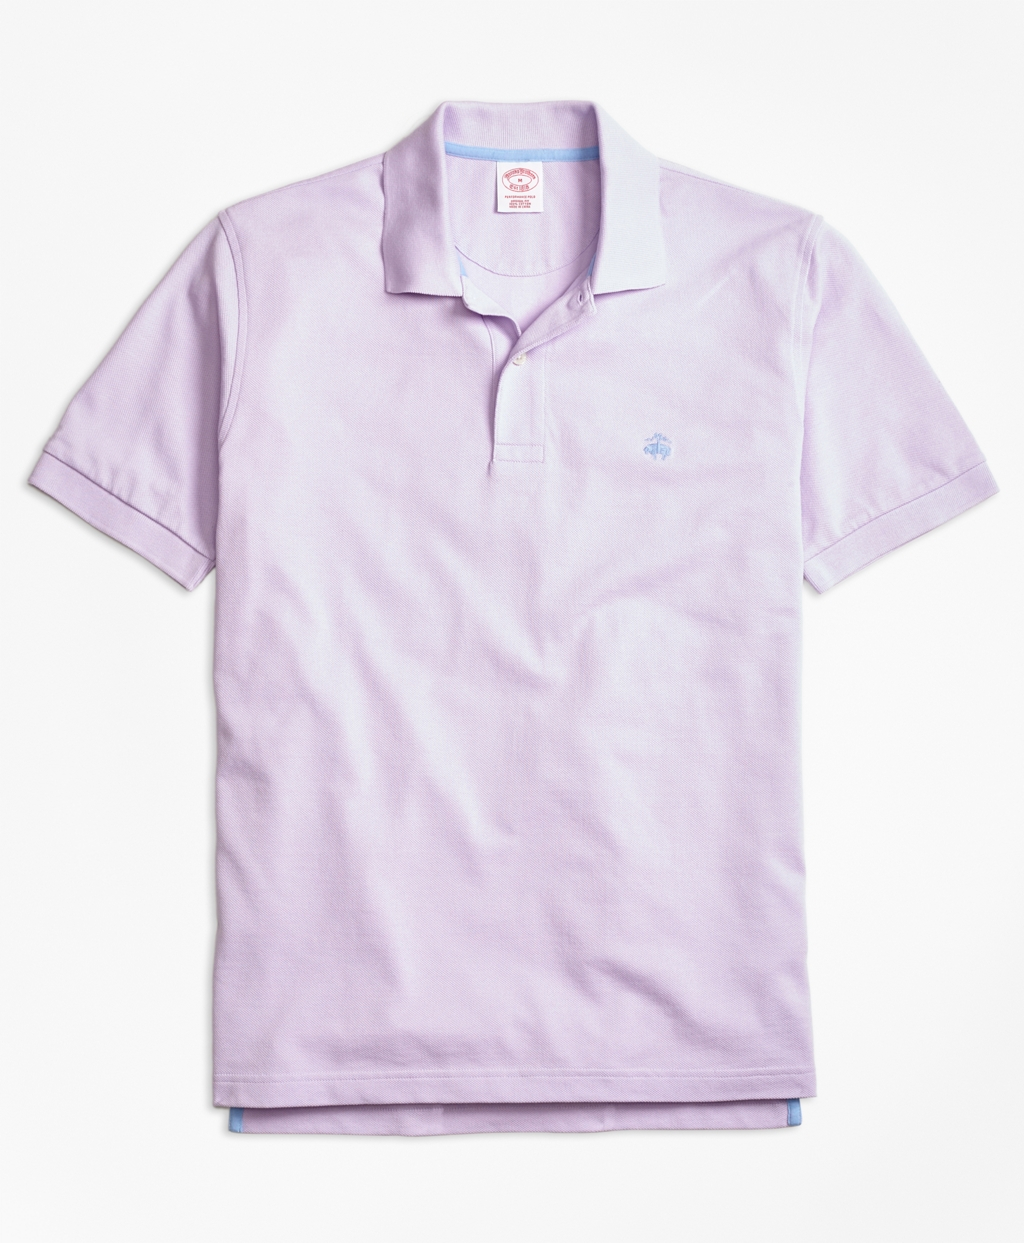 Brothers Diesel Performance >> Brooks brothers Golden Fleece® Original Fit Performance Polo Shirt in Purple for Men | Lyst